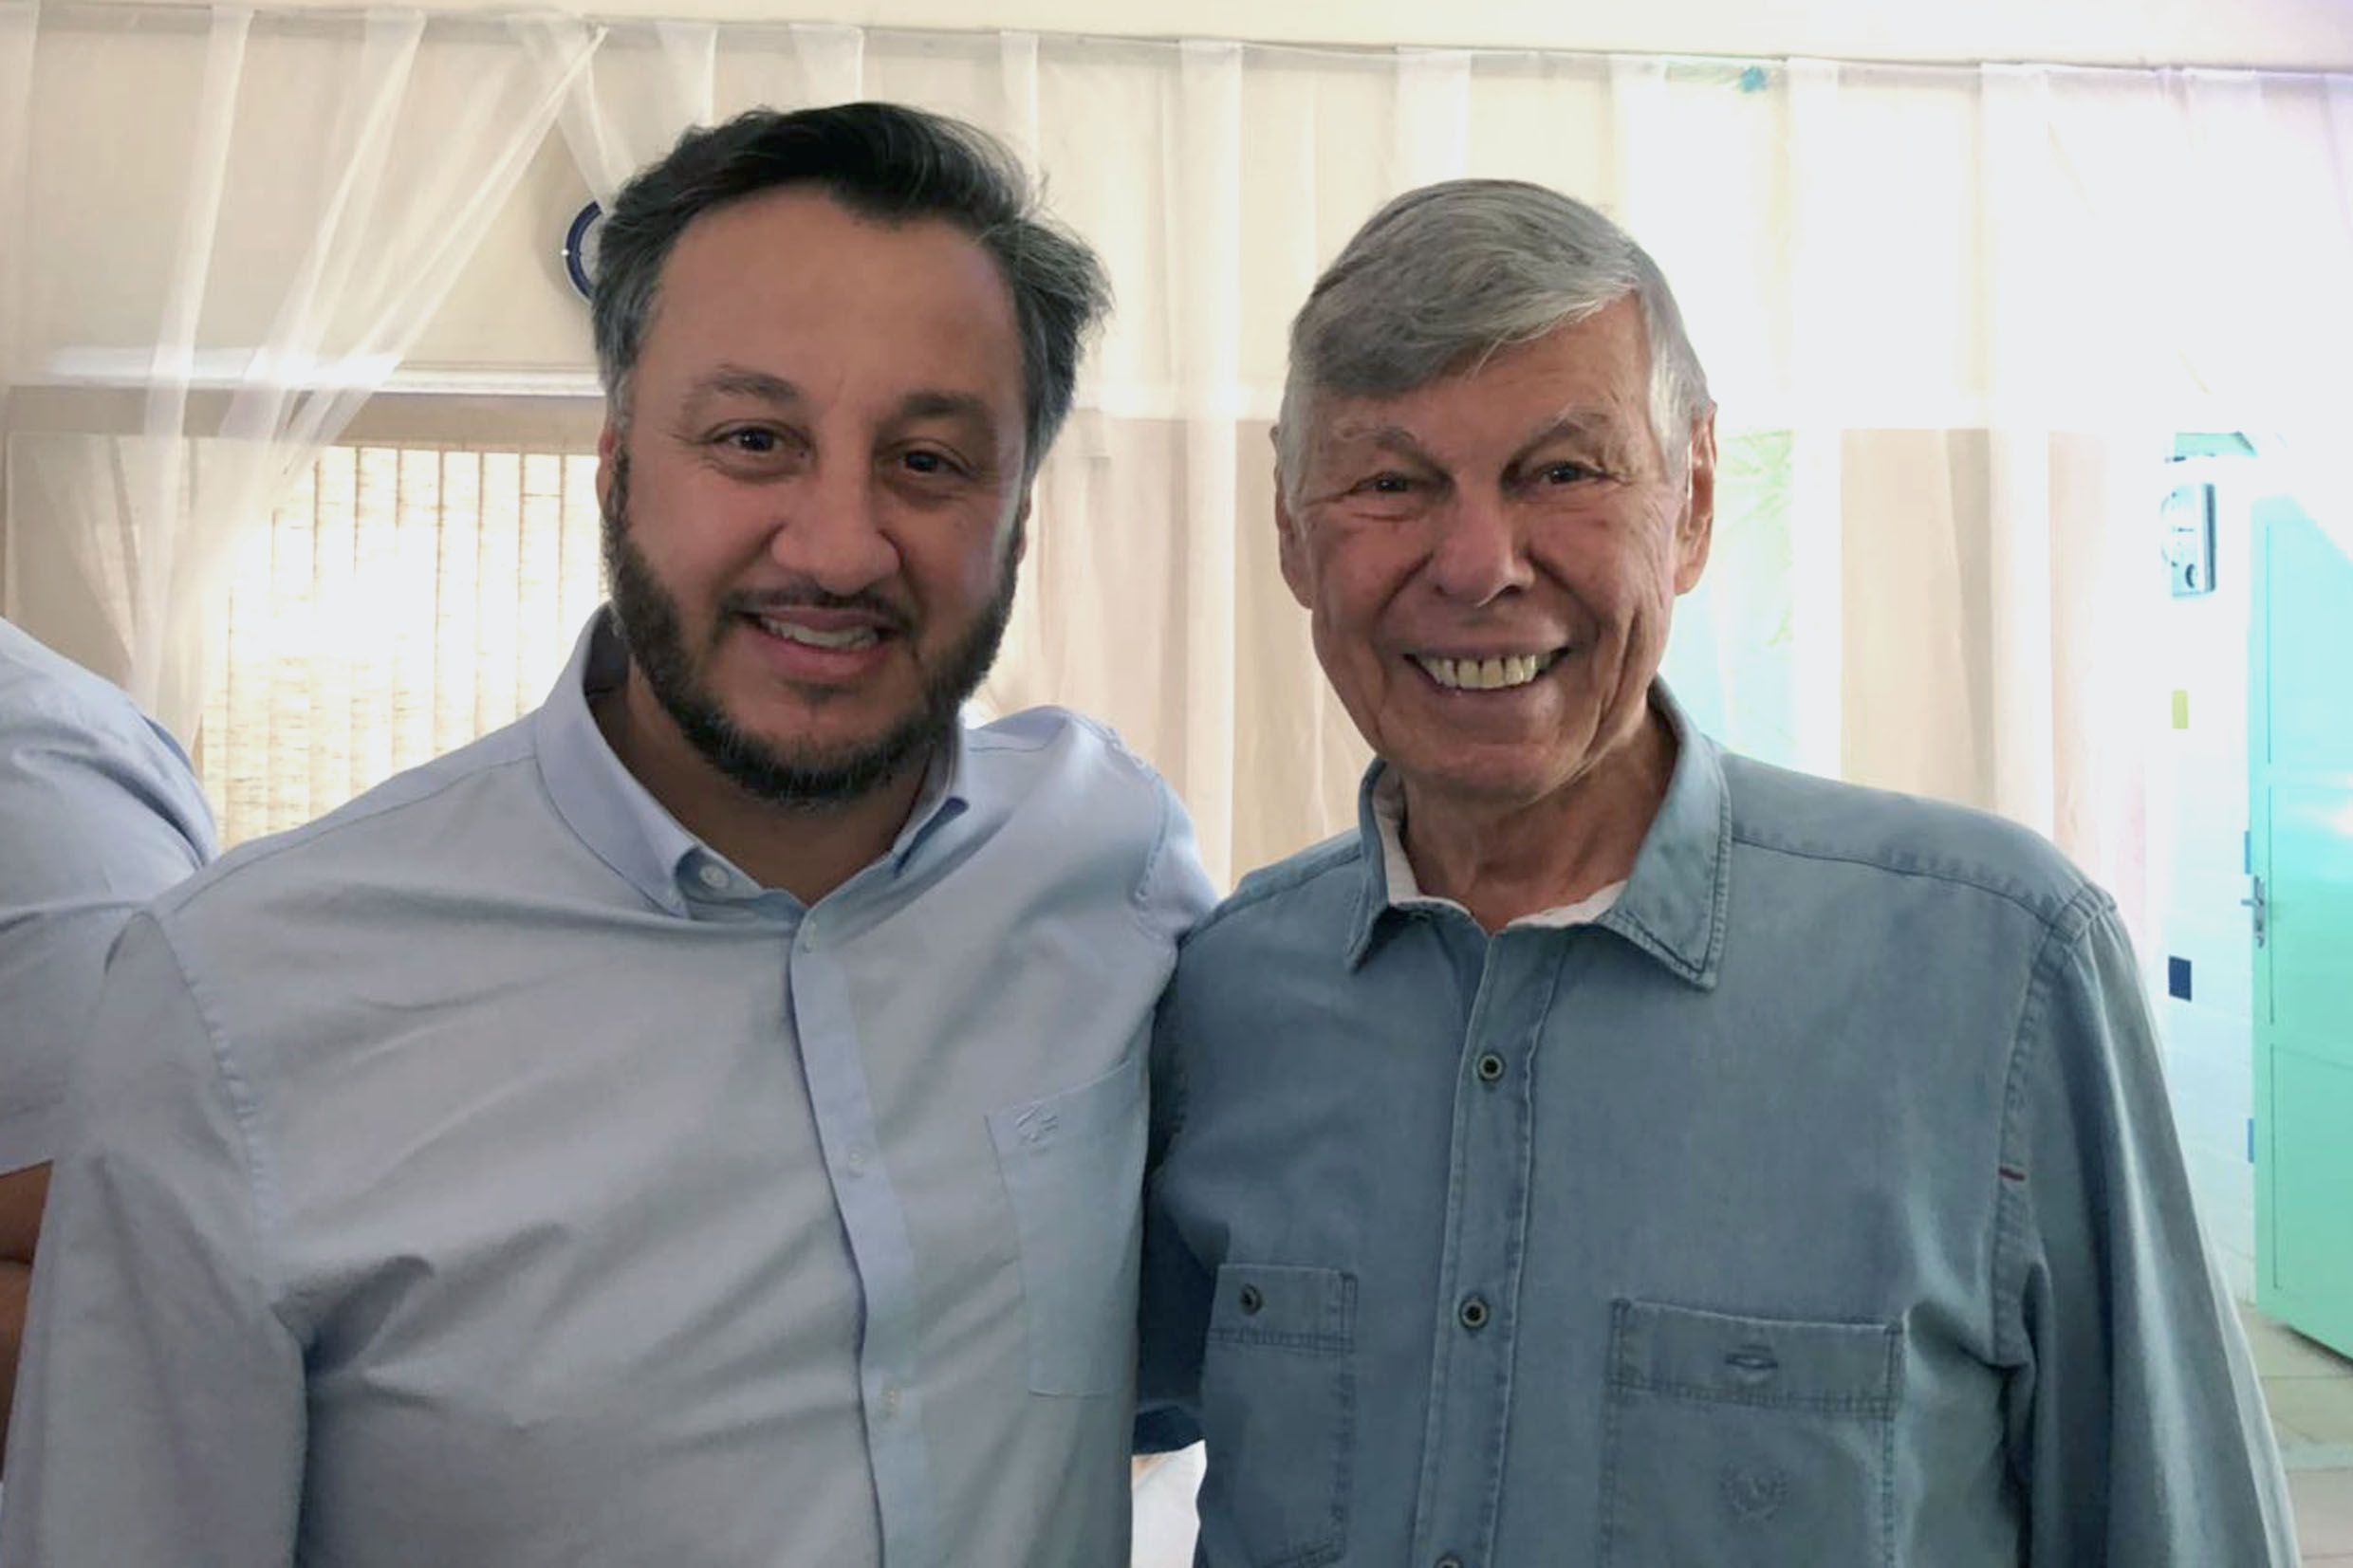 João Cury Neto e Welson Gasparini<a style='float:right' href='https://www3.al.sp.gov.br/repositorio/noticia/N-05-2018/fg223182.jpg' target=_blank><img src='/_img/material-file-download-white.png' width='14px' alt='Clique para baixar a imagem'></a>